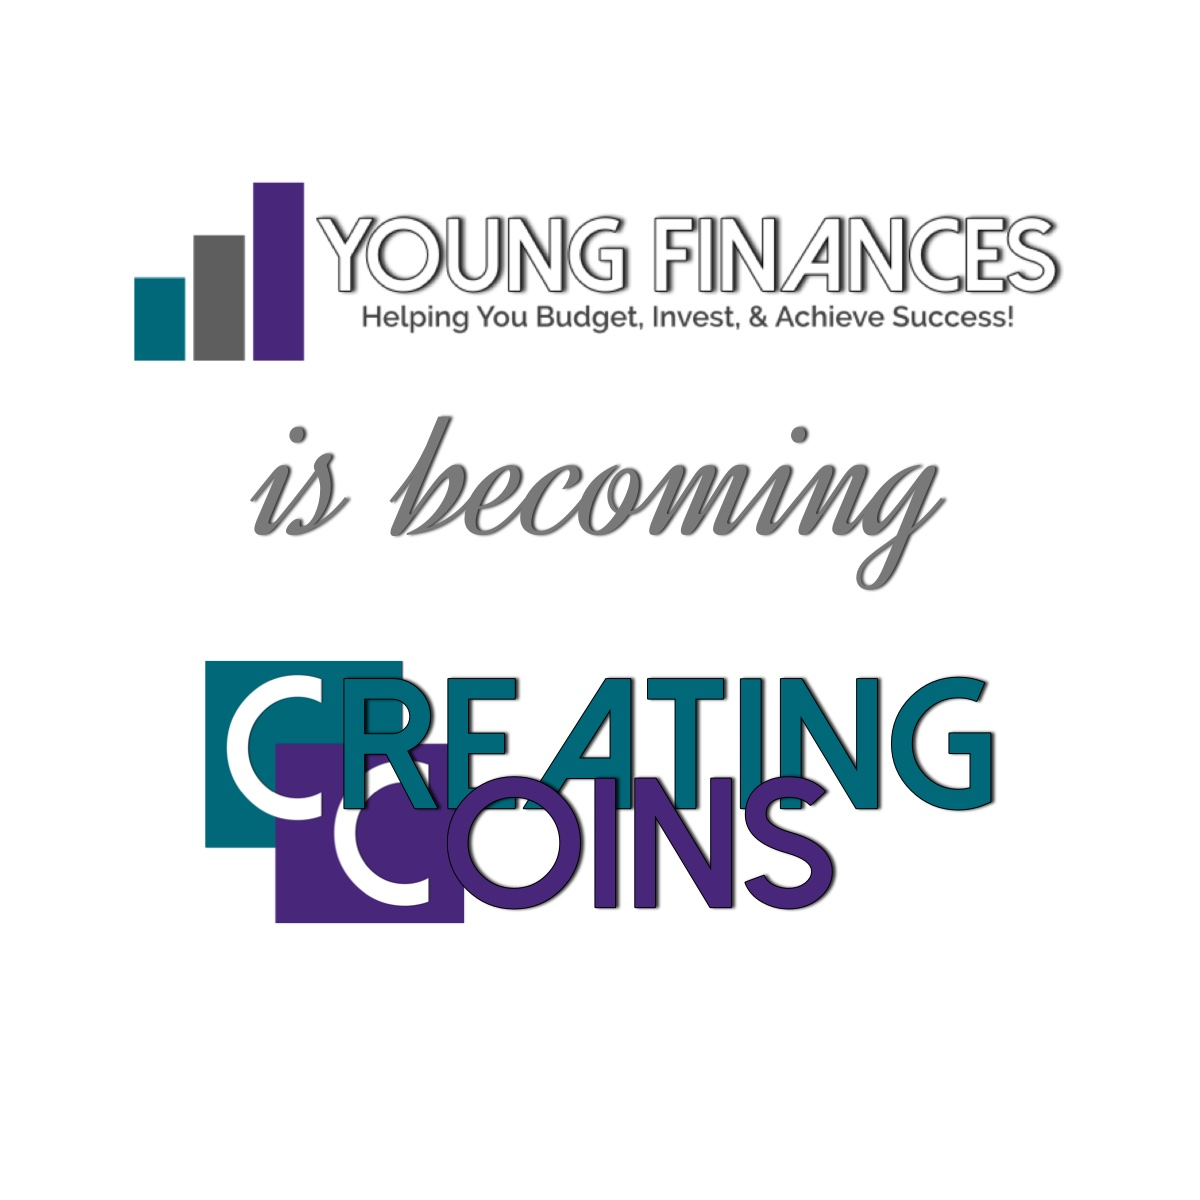 young finances to creating coins